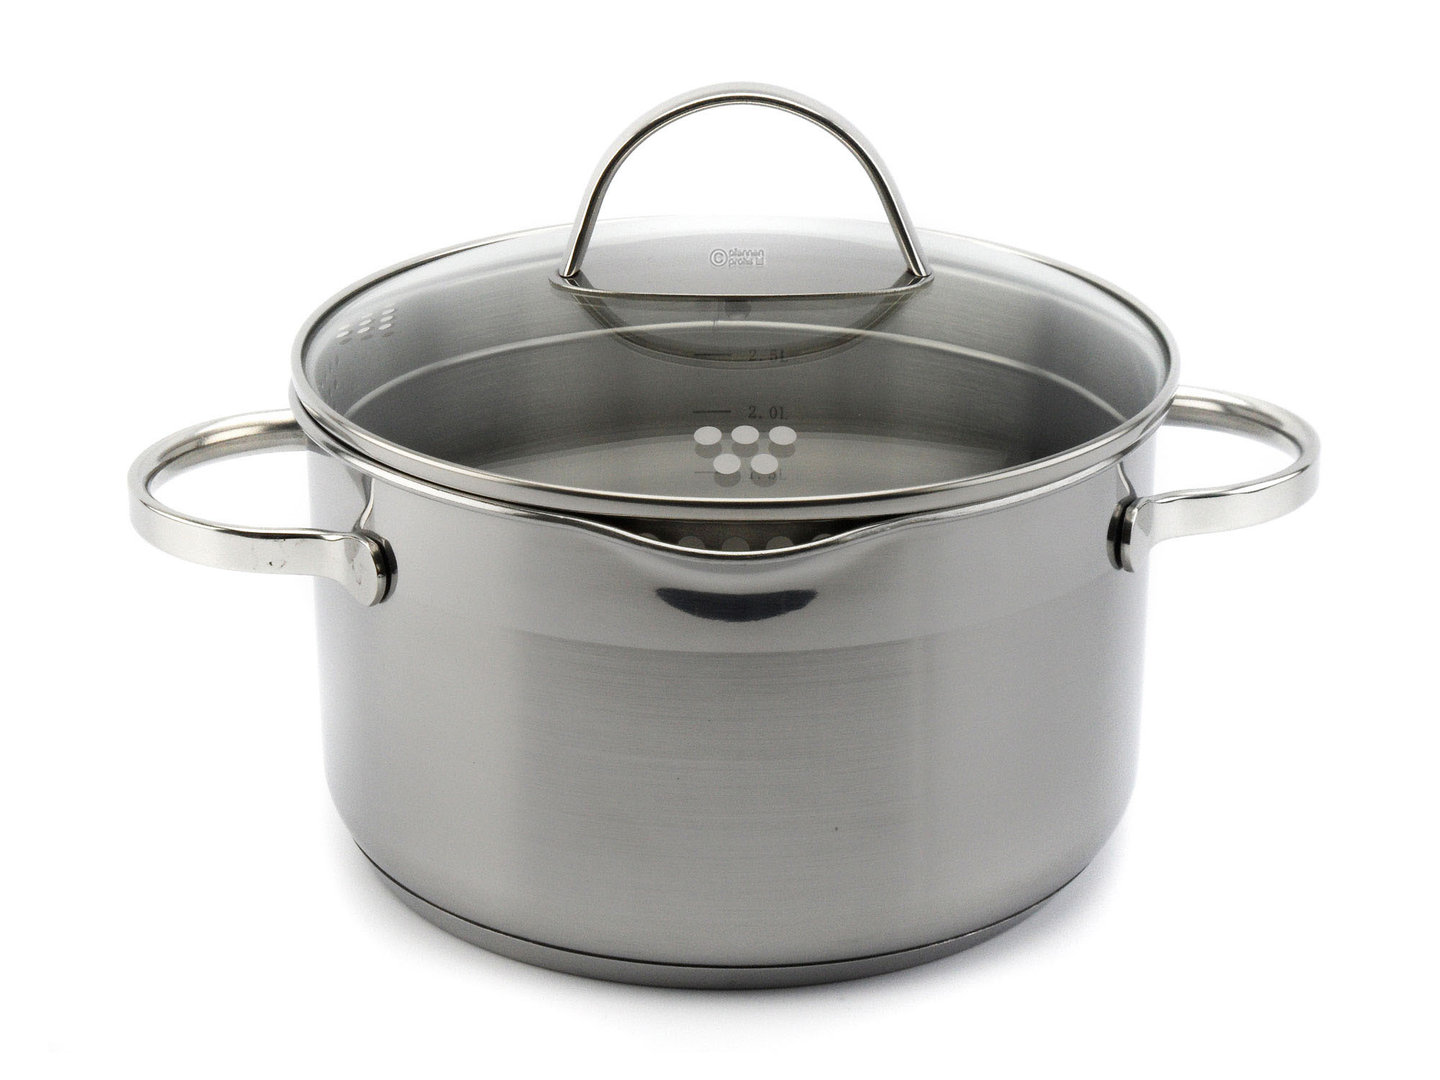 SSW easy straining casserole COMFORT 20 cm 3.6 L stainless steel induction